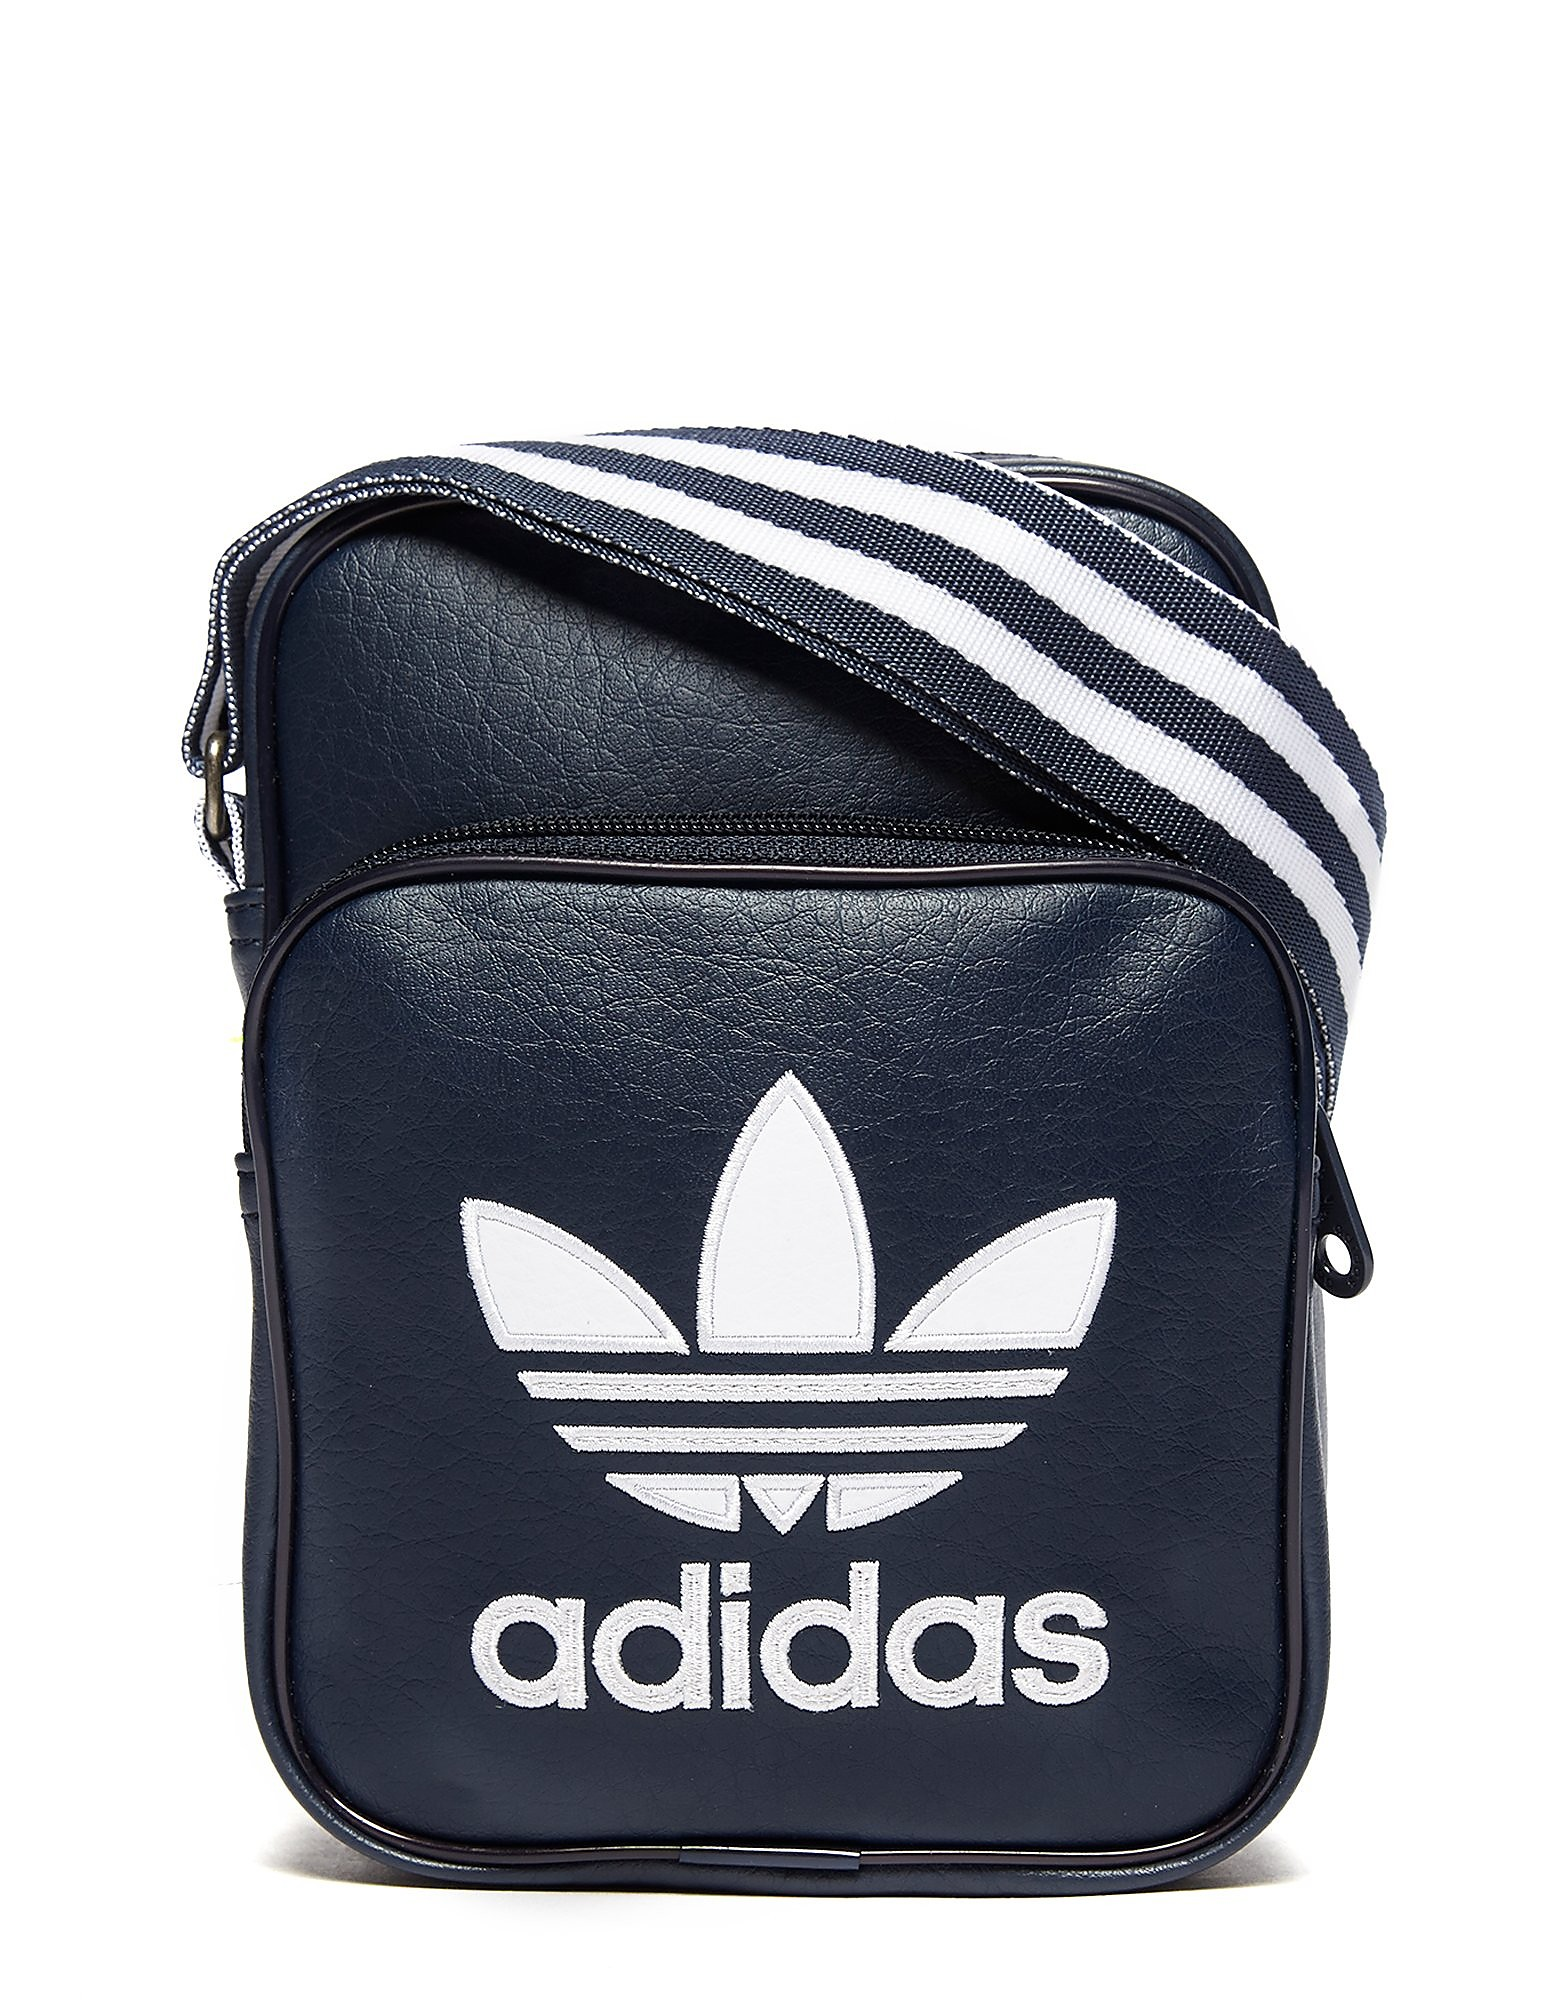 Leather gloves mens jd - Adidas Originals Small Items Bag Navy White Mens Navy White